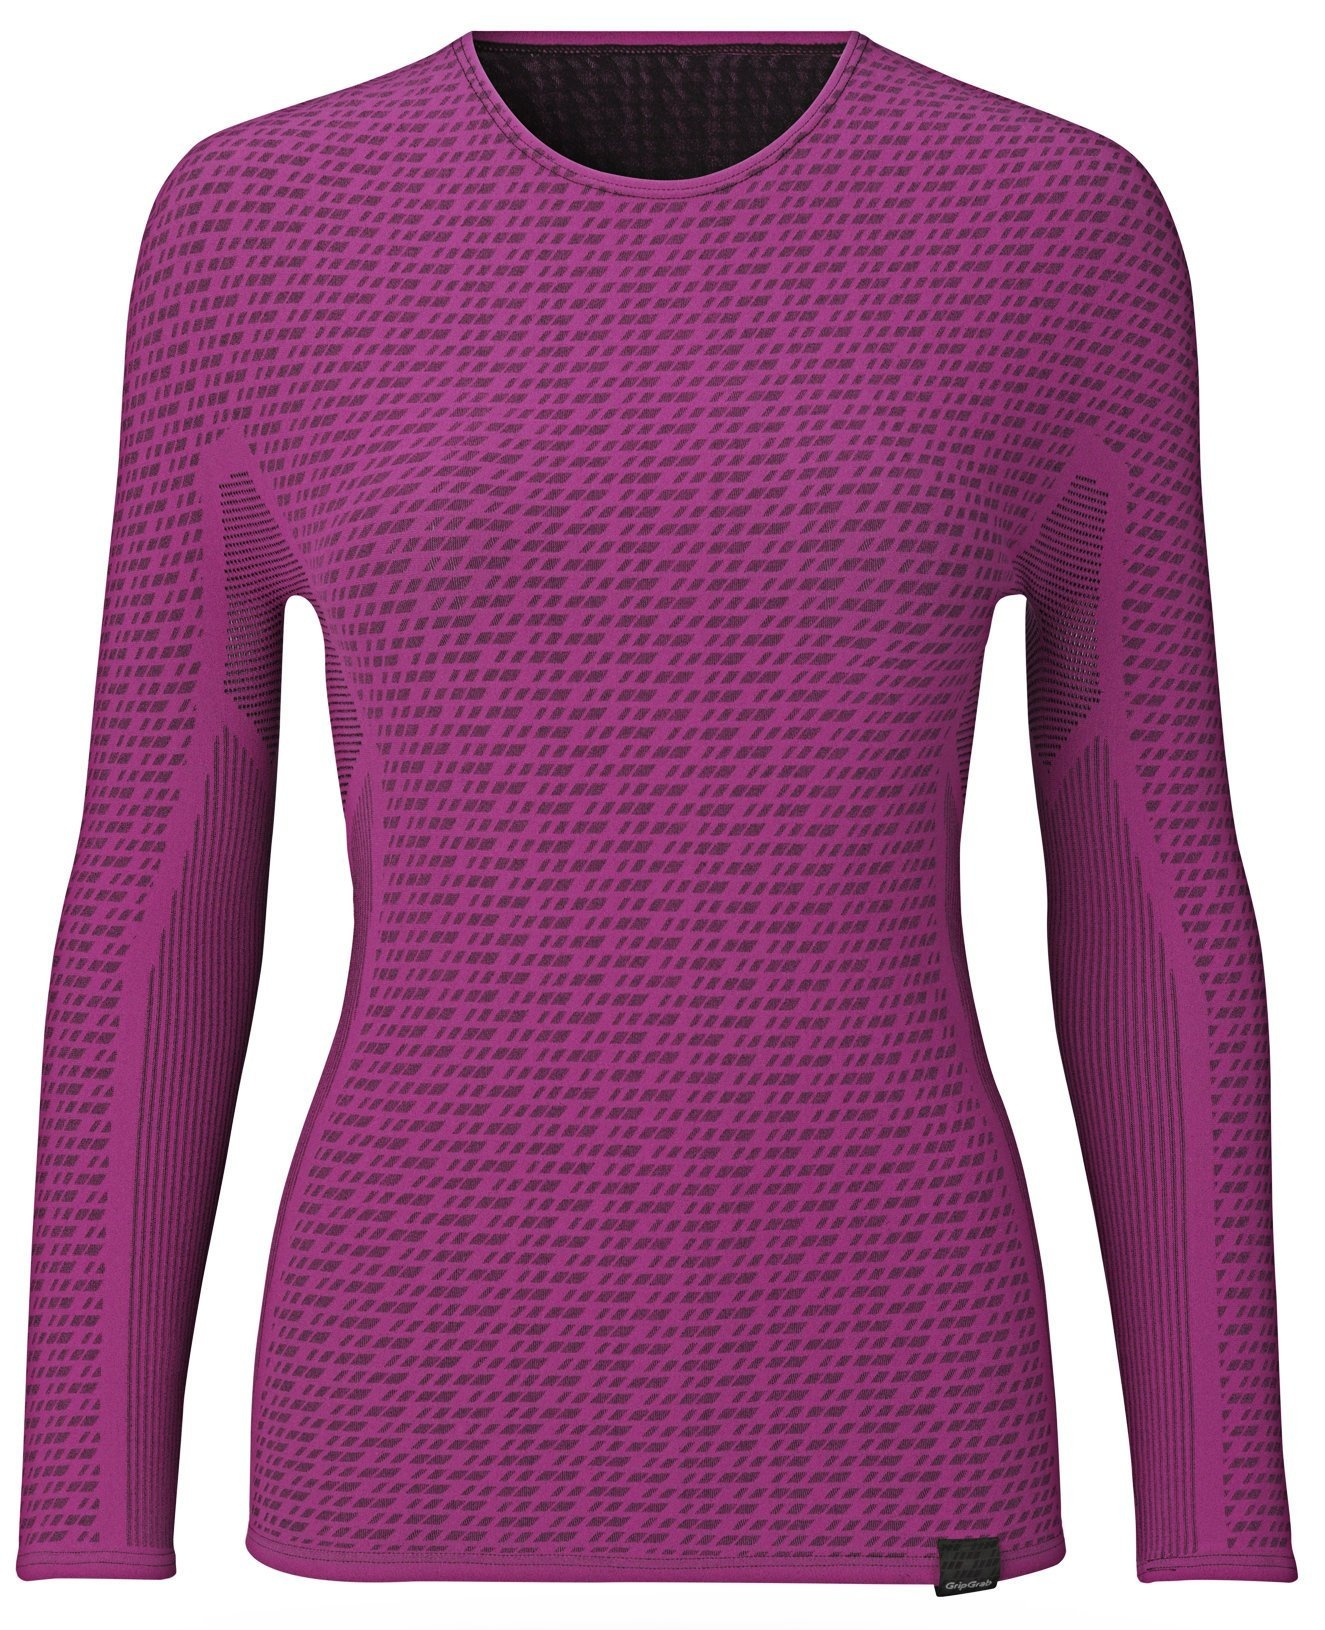 Gripgrab Gripgrab Freedom Seamless Thermal Base Layer - Pink Beklædning > Cykeltøj Til Herre